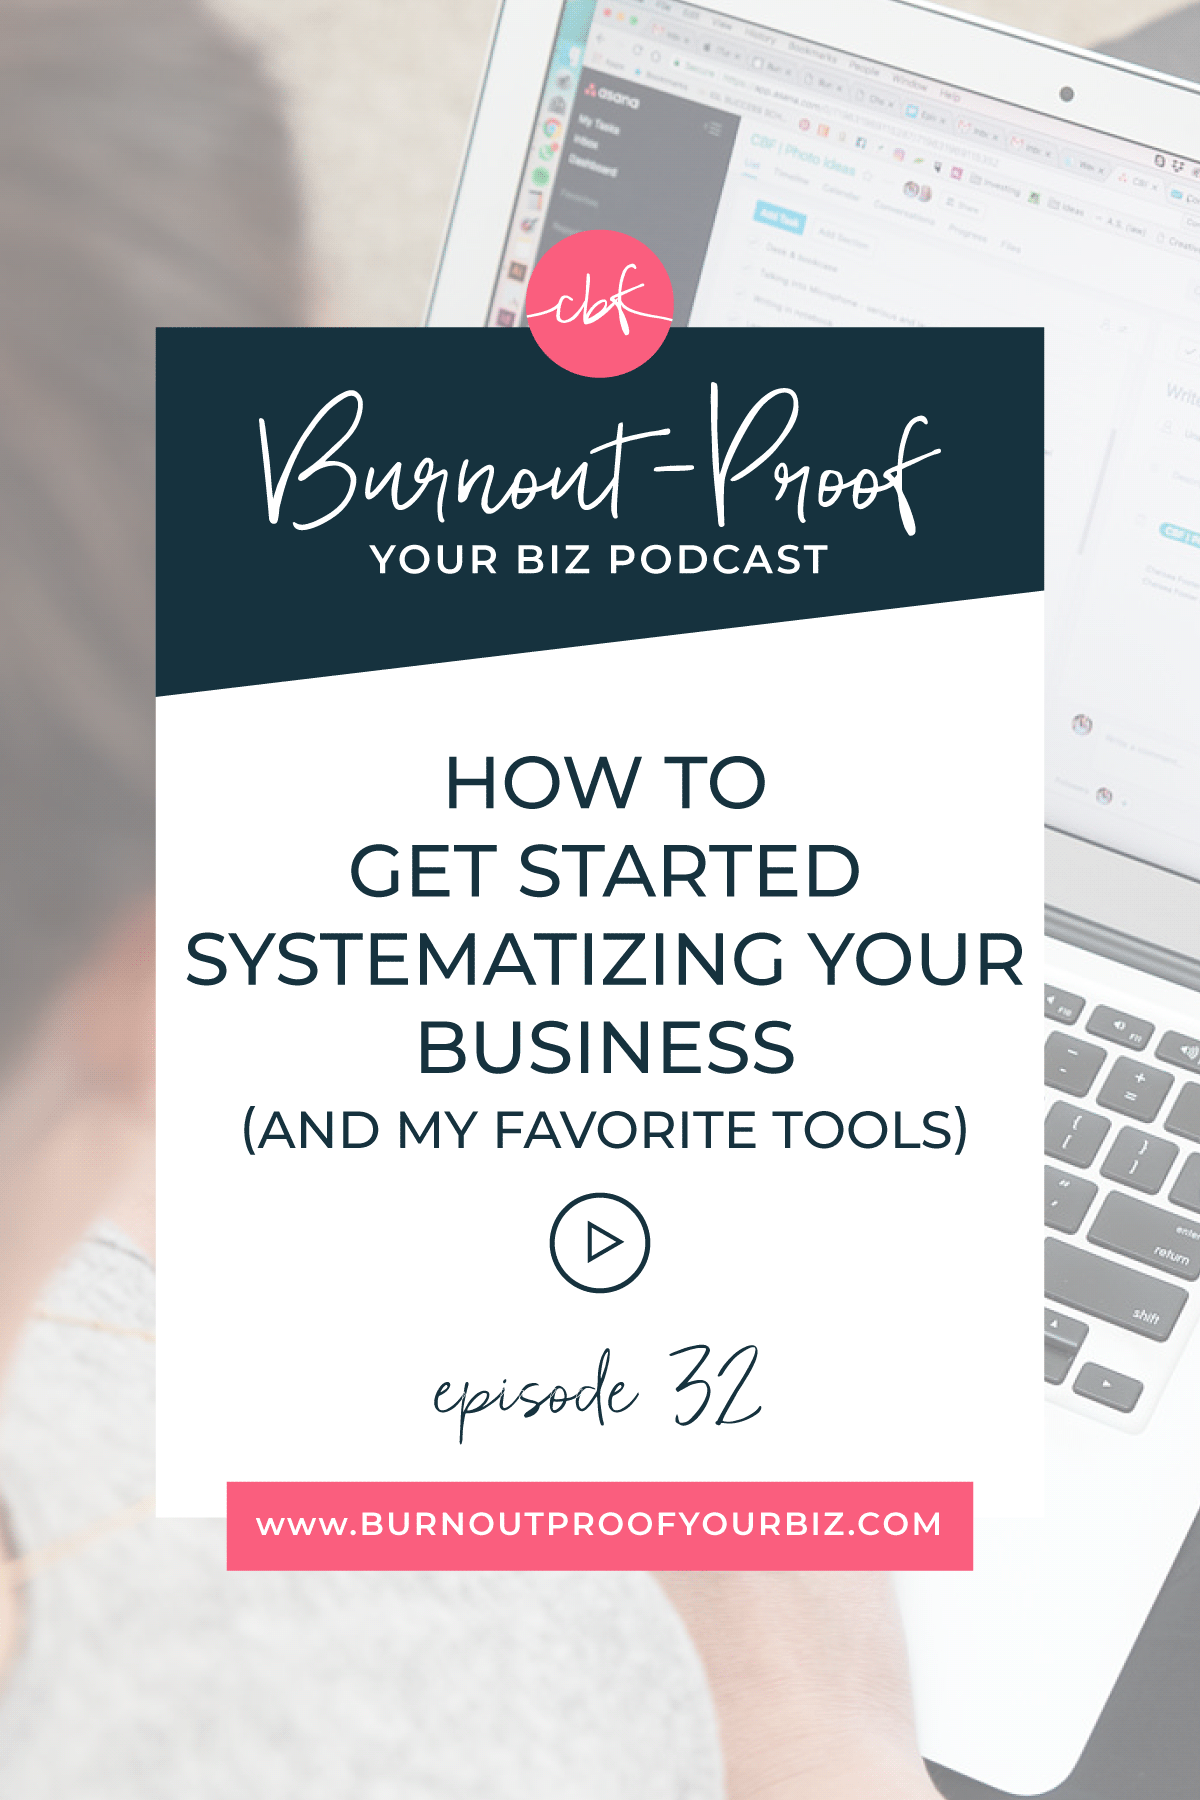 Burnout-Proof Your Biz Podcast with Chelsea B Foster | Episode 032 - How To Get Started Systematizing Your Business (plus my favorite tools to help) || Learn how to run your biz and live your dream life on your own terms without the fear of burnout. || Workflow & Productivity Specialist | Systems | Automations | Systematize Your Creative Business | Automate Your Creative Business | Later | Dubsado | Asana | Trello | Zapier